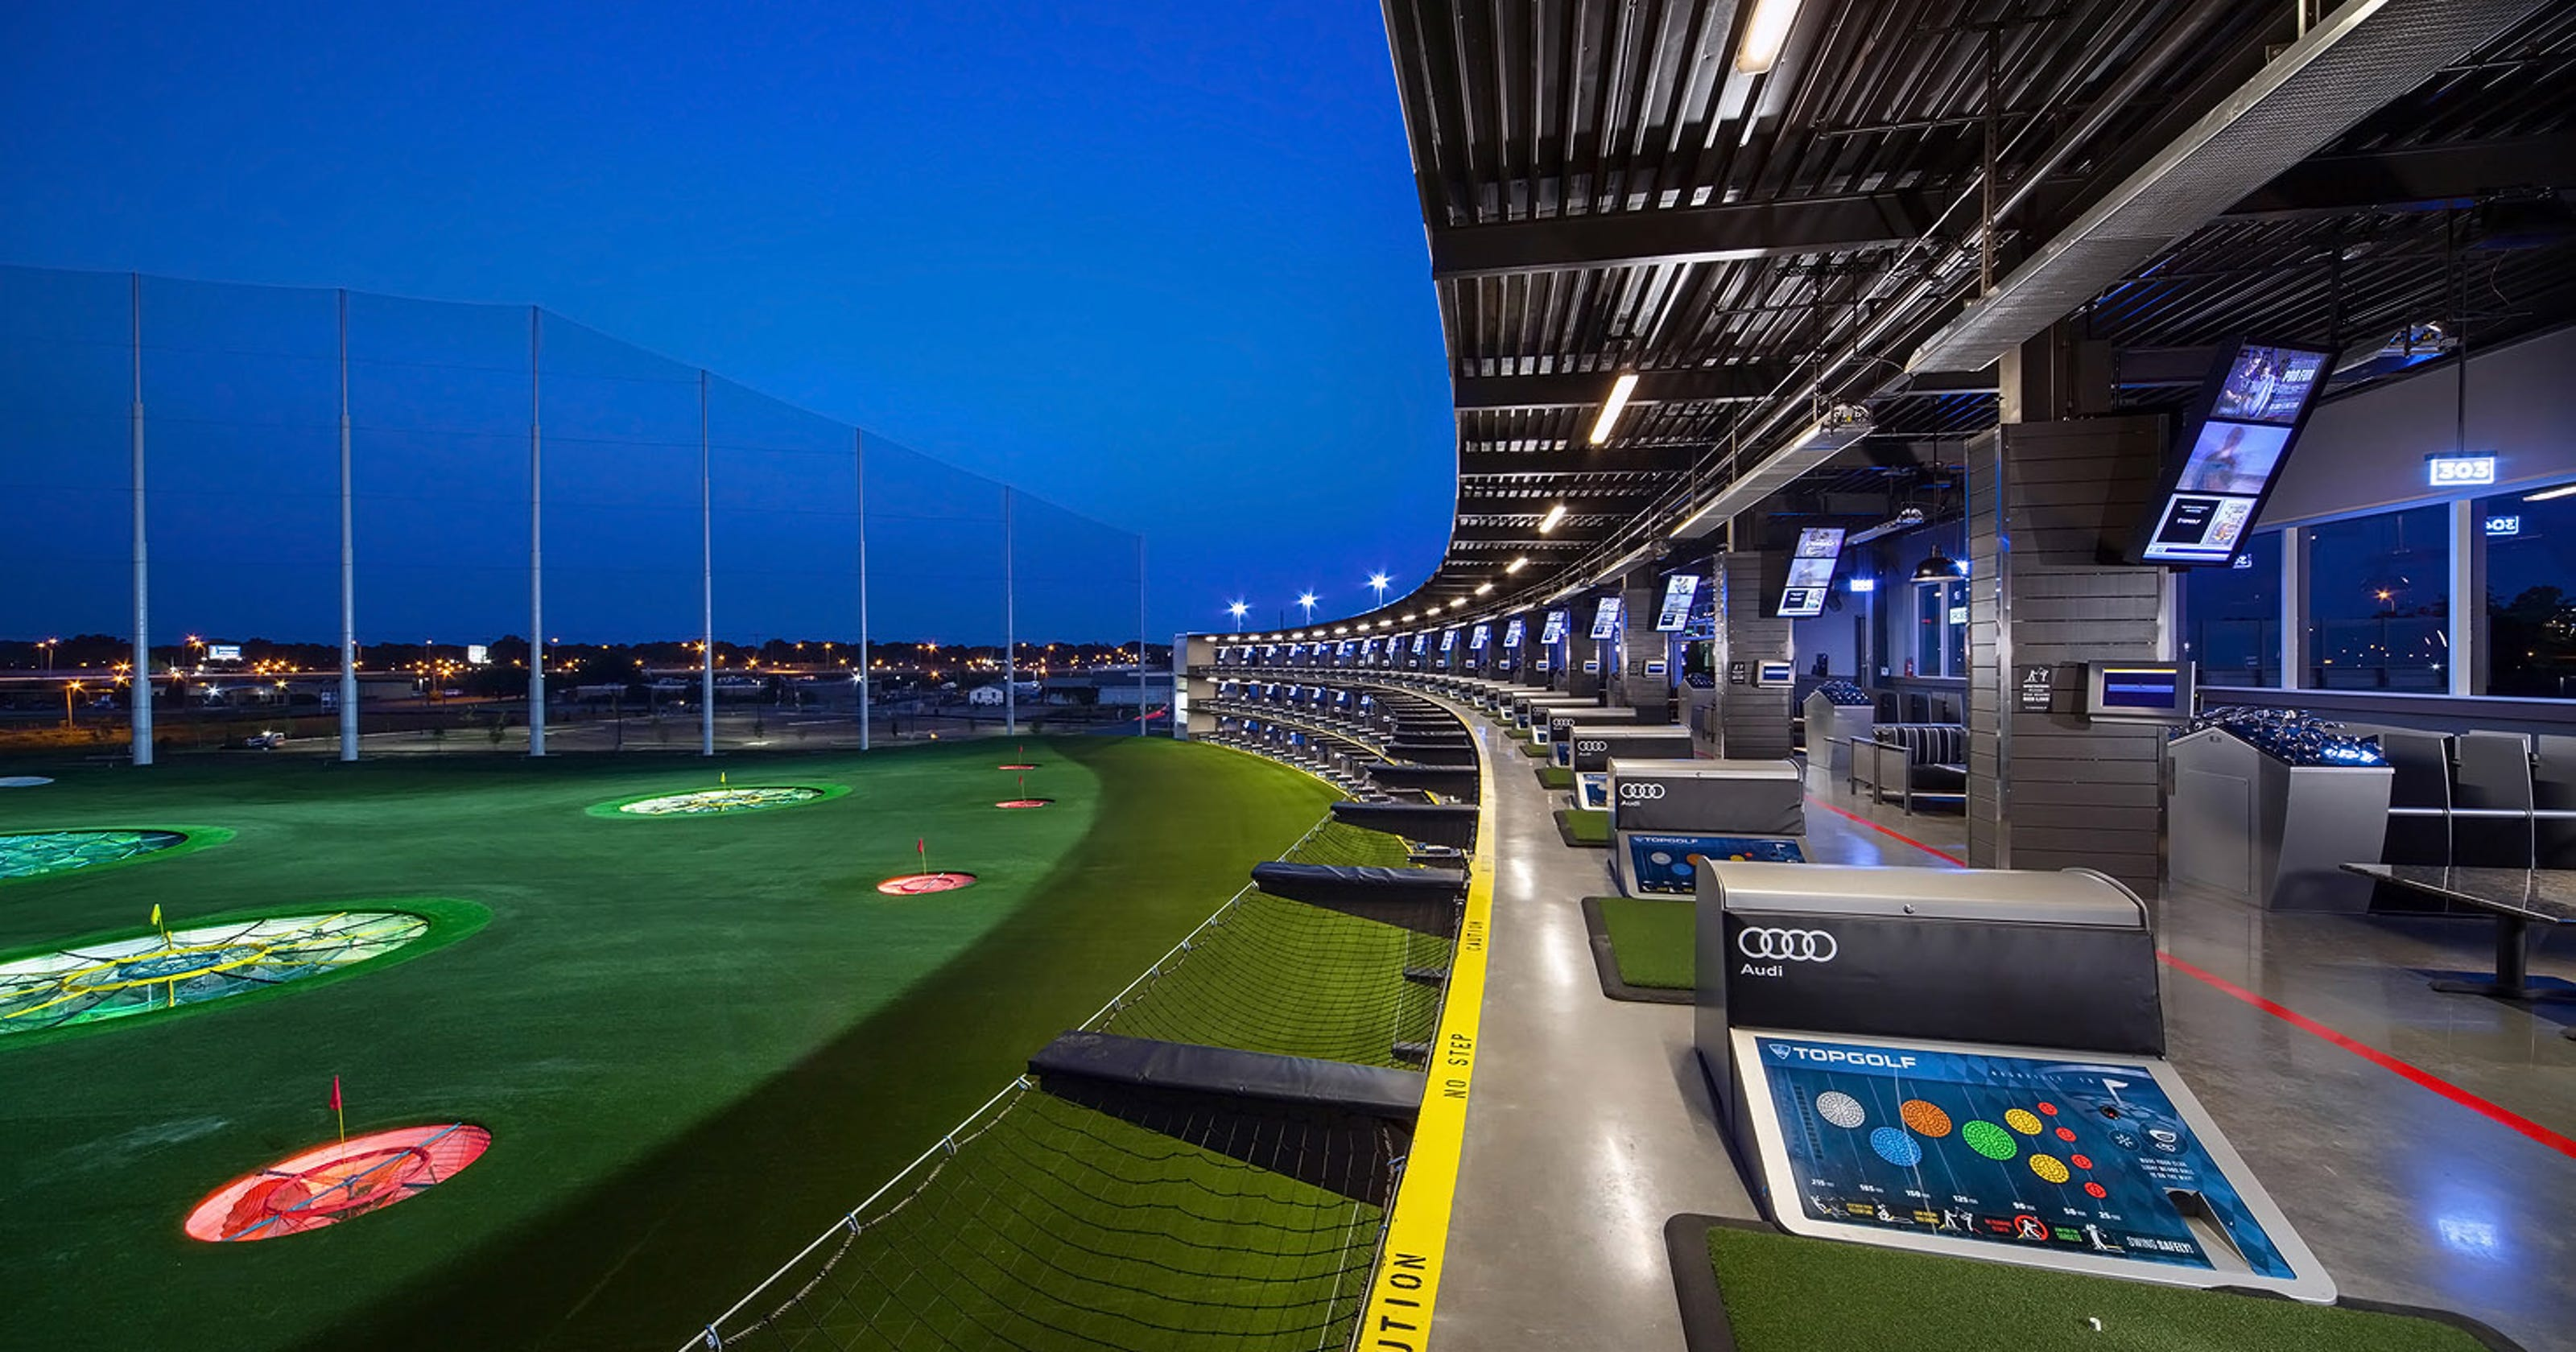 Topgolf teed up for Farragut as the start of new